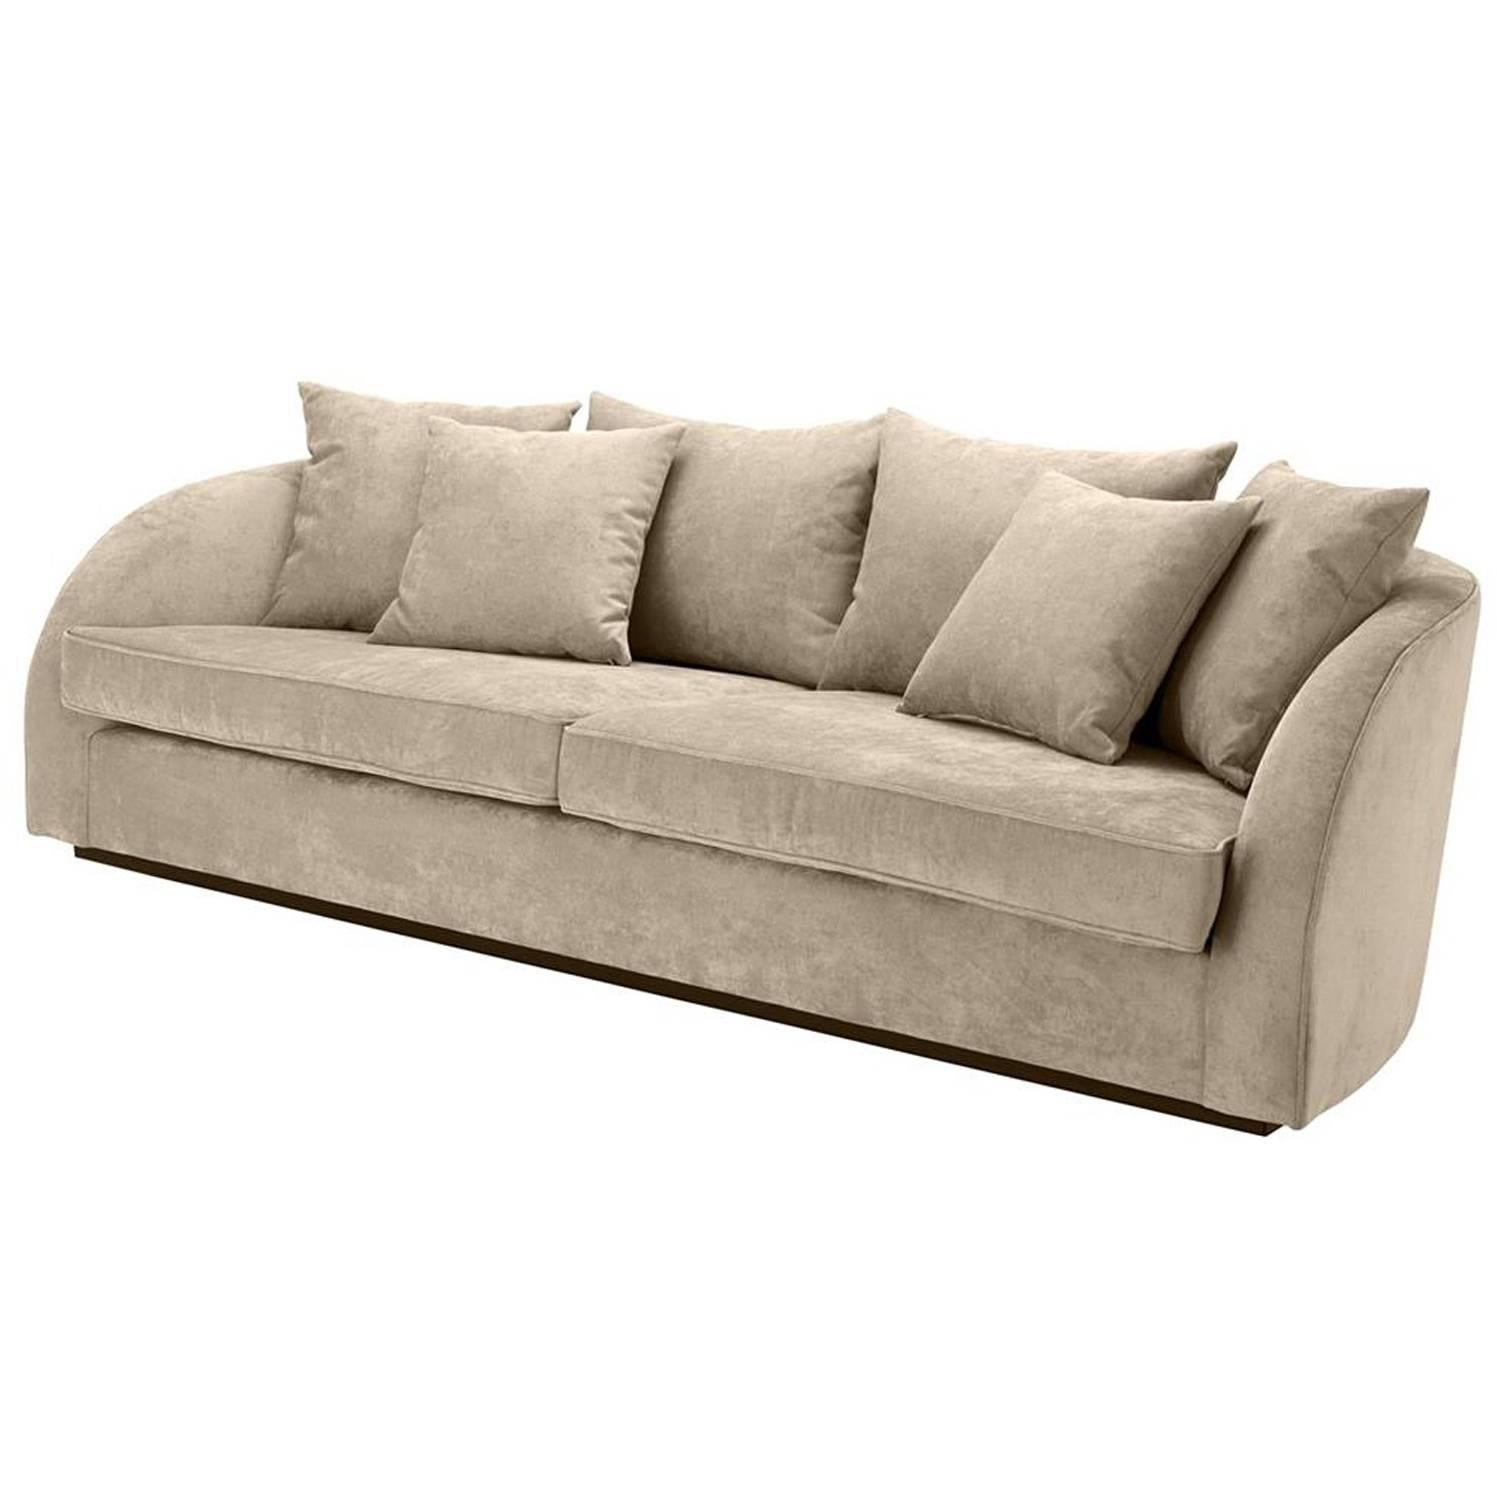 Miami Lounge Sofa With Greige Velvet Fabric For Sale